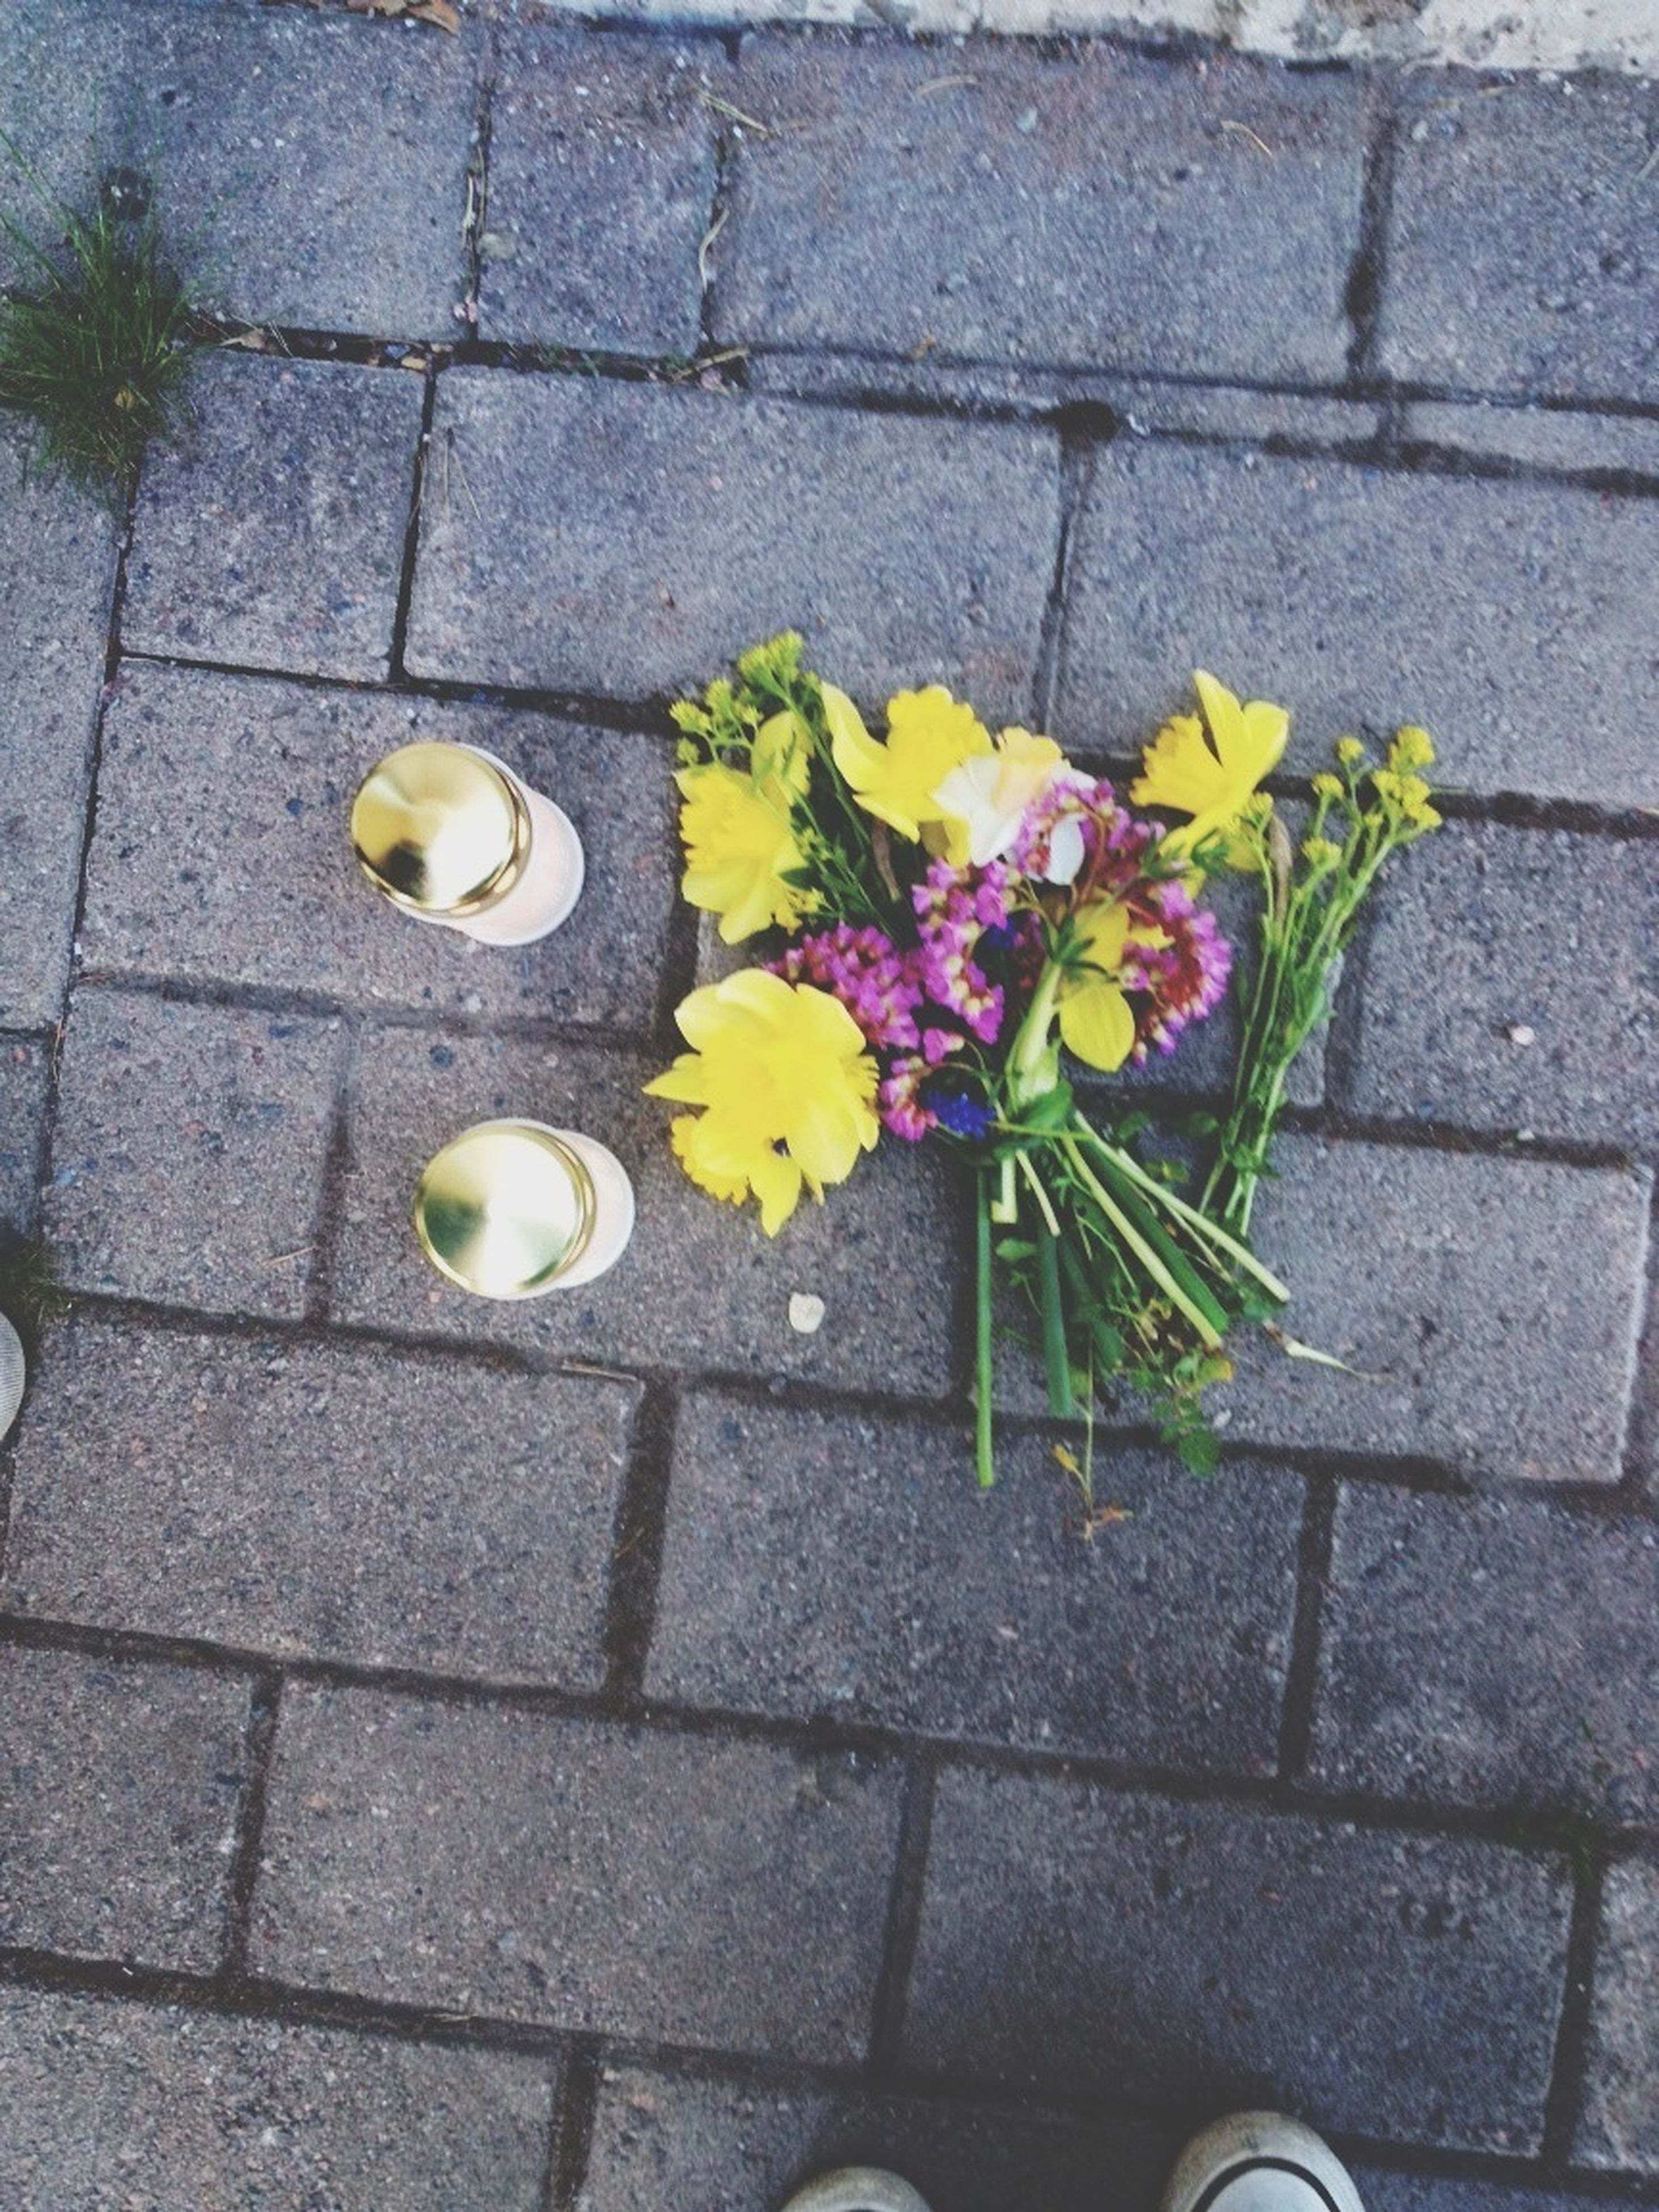 high angle view, yellow, flower, street, cobblestone, paving stone, freshness, sidewalk, directly above, footpath, fragility, leaf, day, tiled floor, outdoors, pavement, plant, petal, shoe, no people